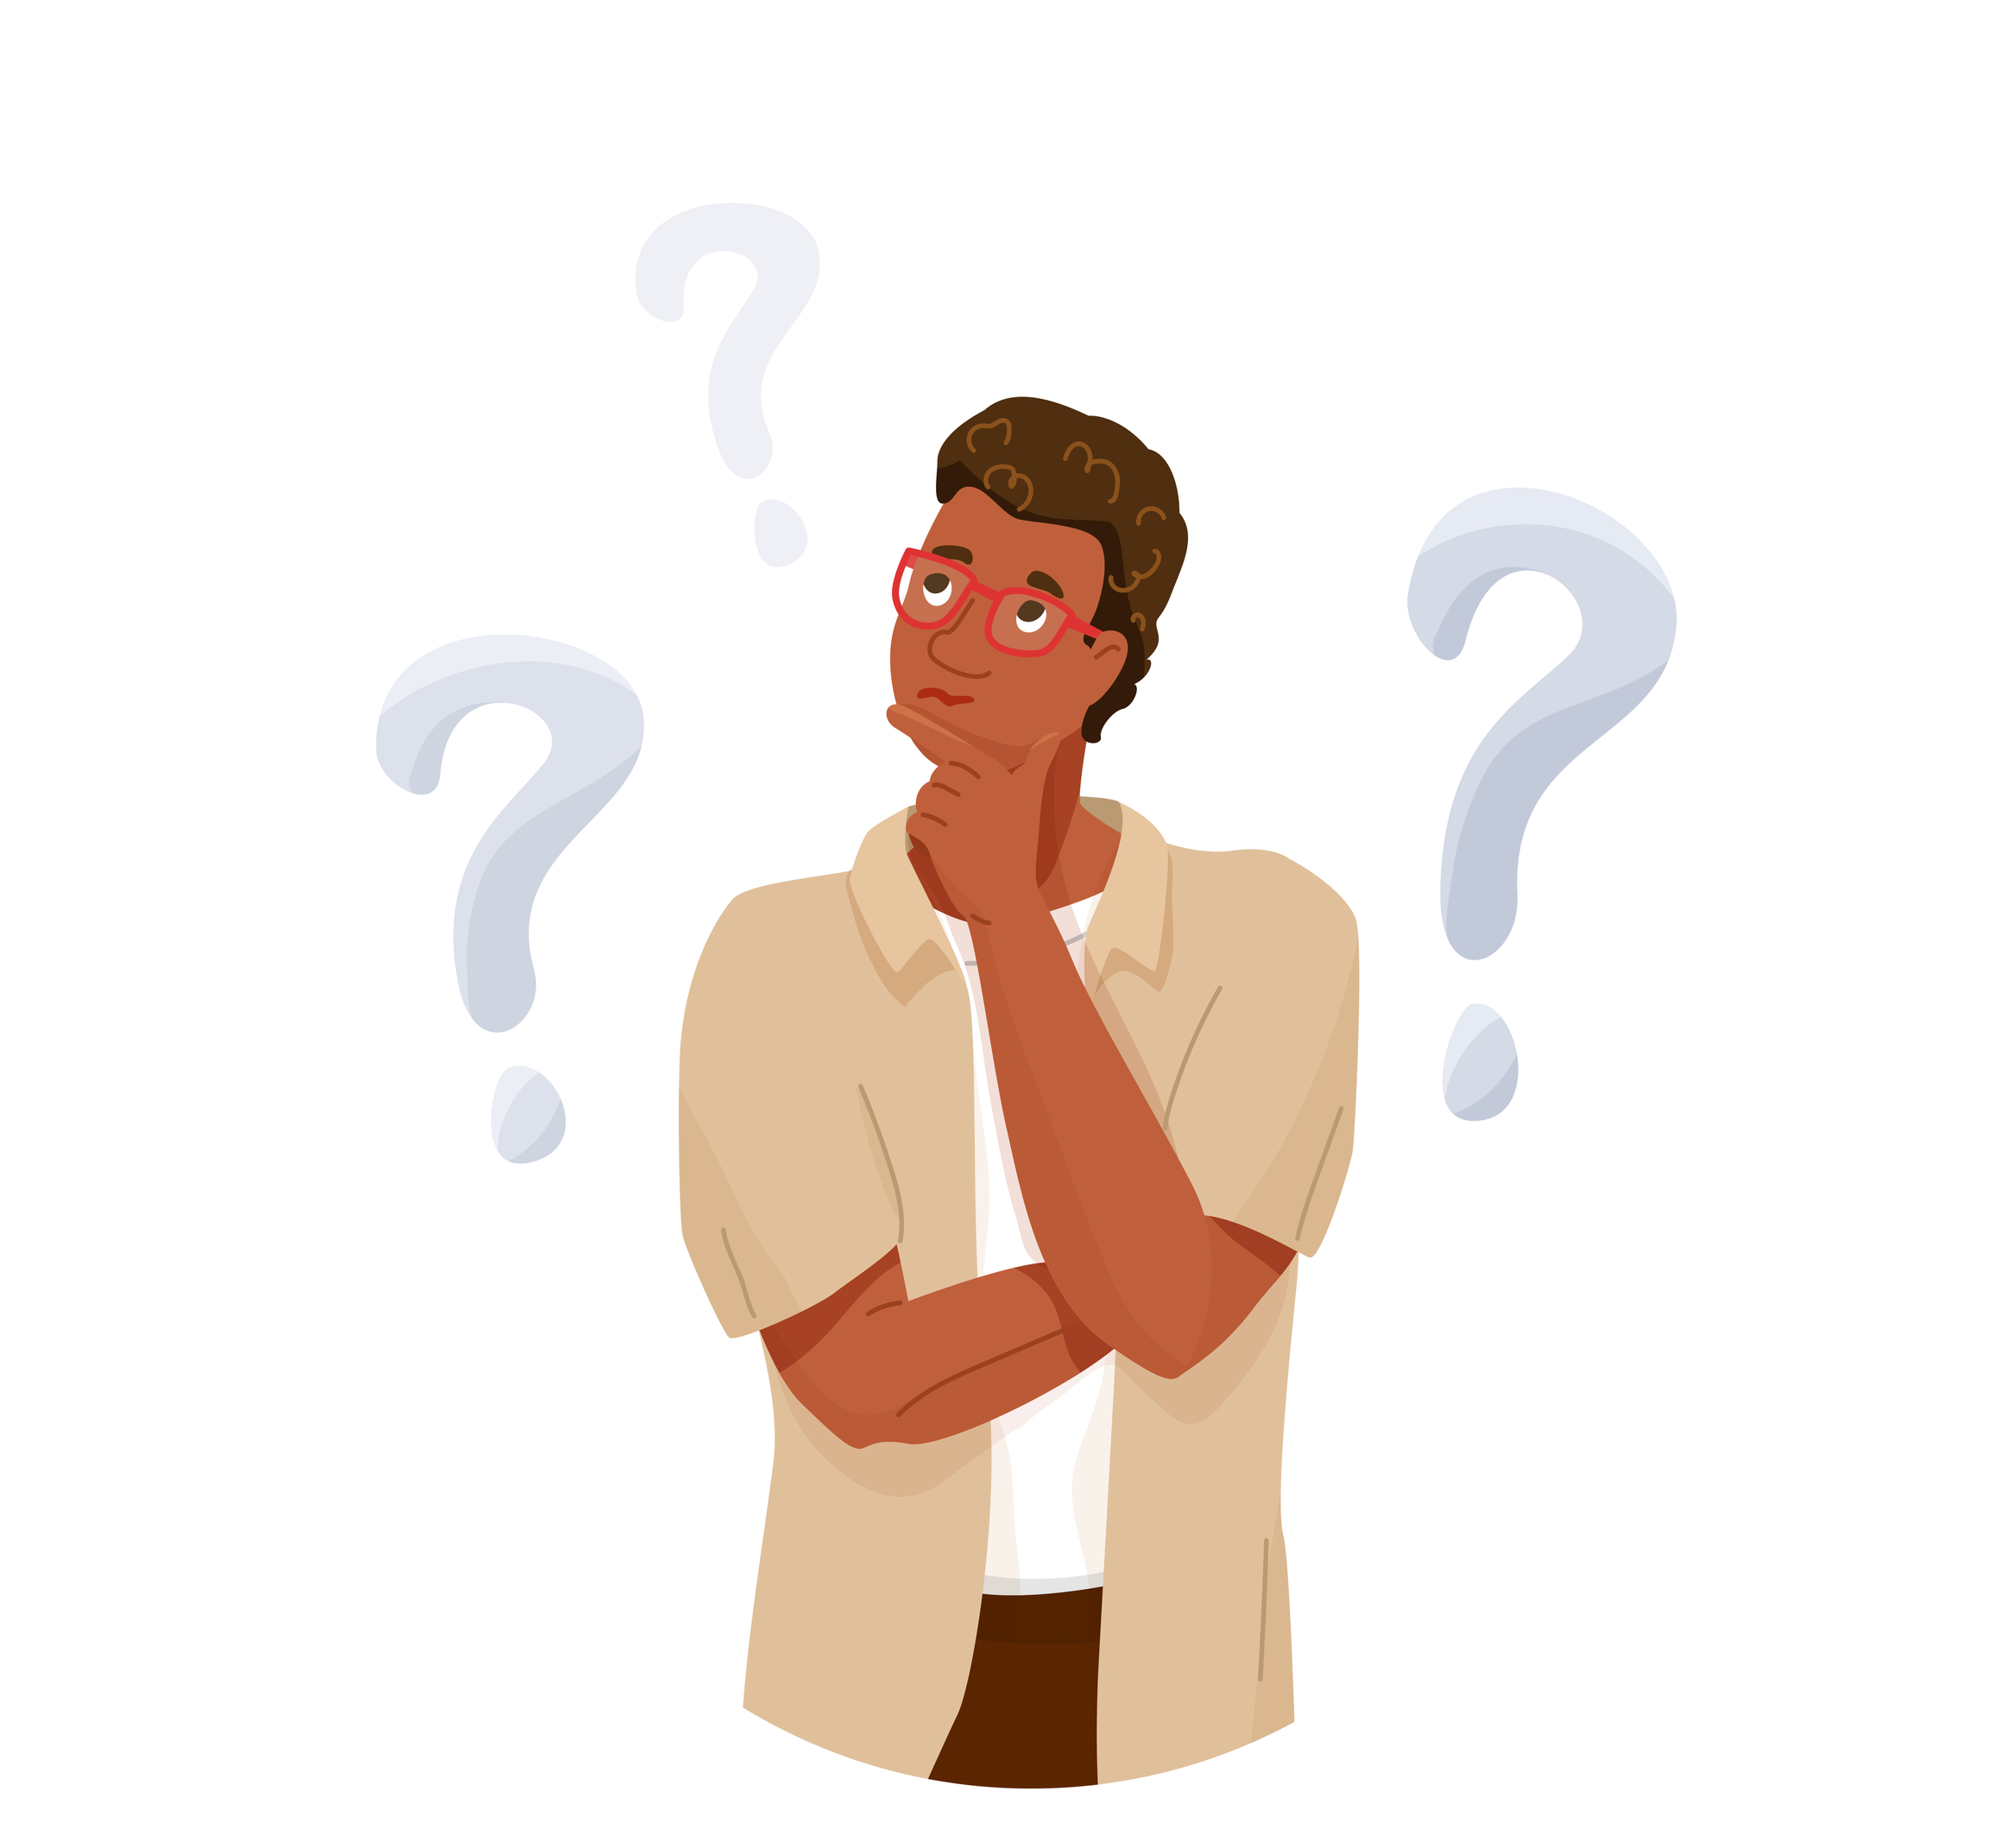 illustration of a Guy Thinking with questions marks surrounding him Self Taught Coder